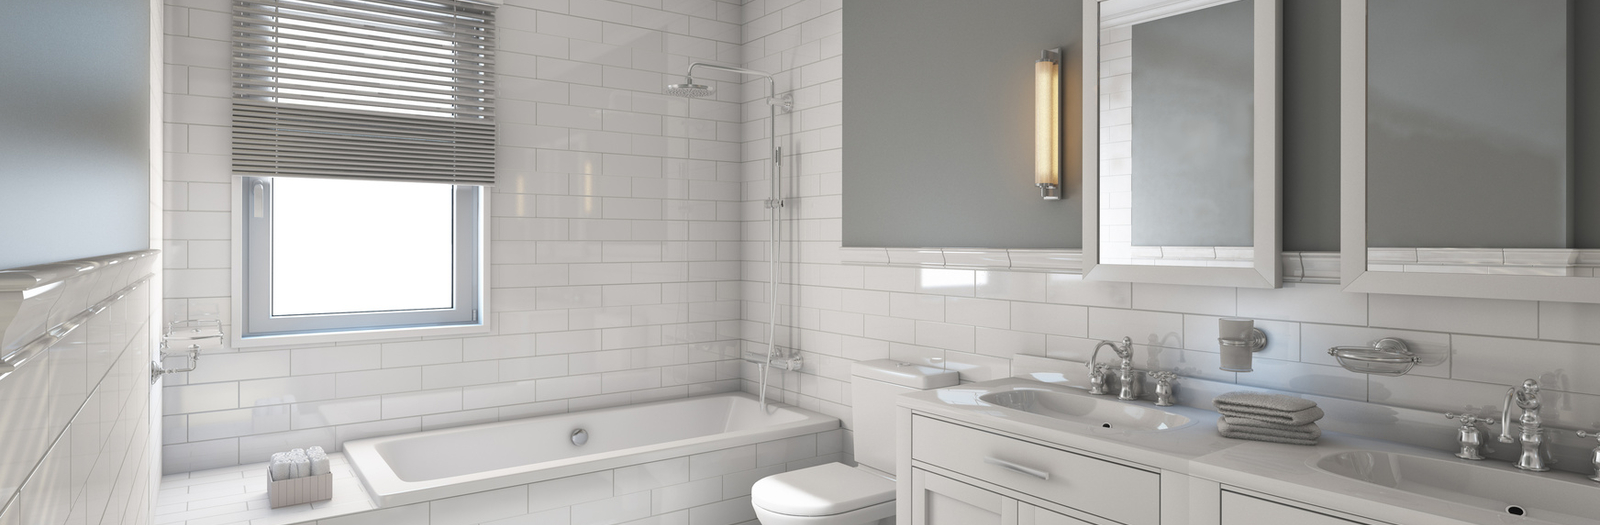 Transitional Bathroom with white subway tile shower surround